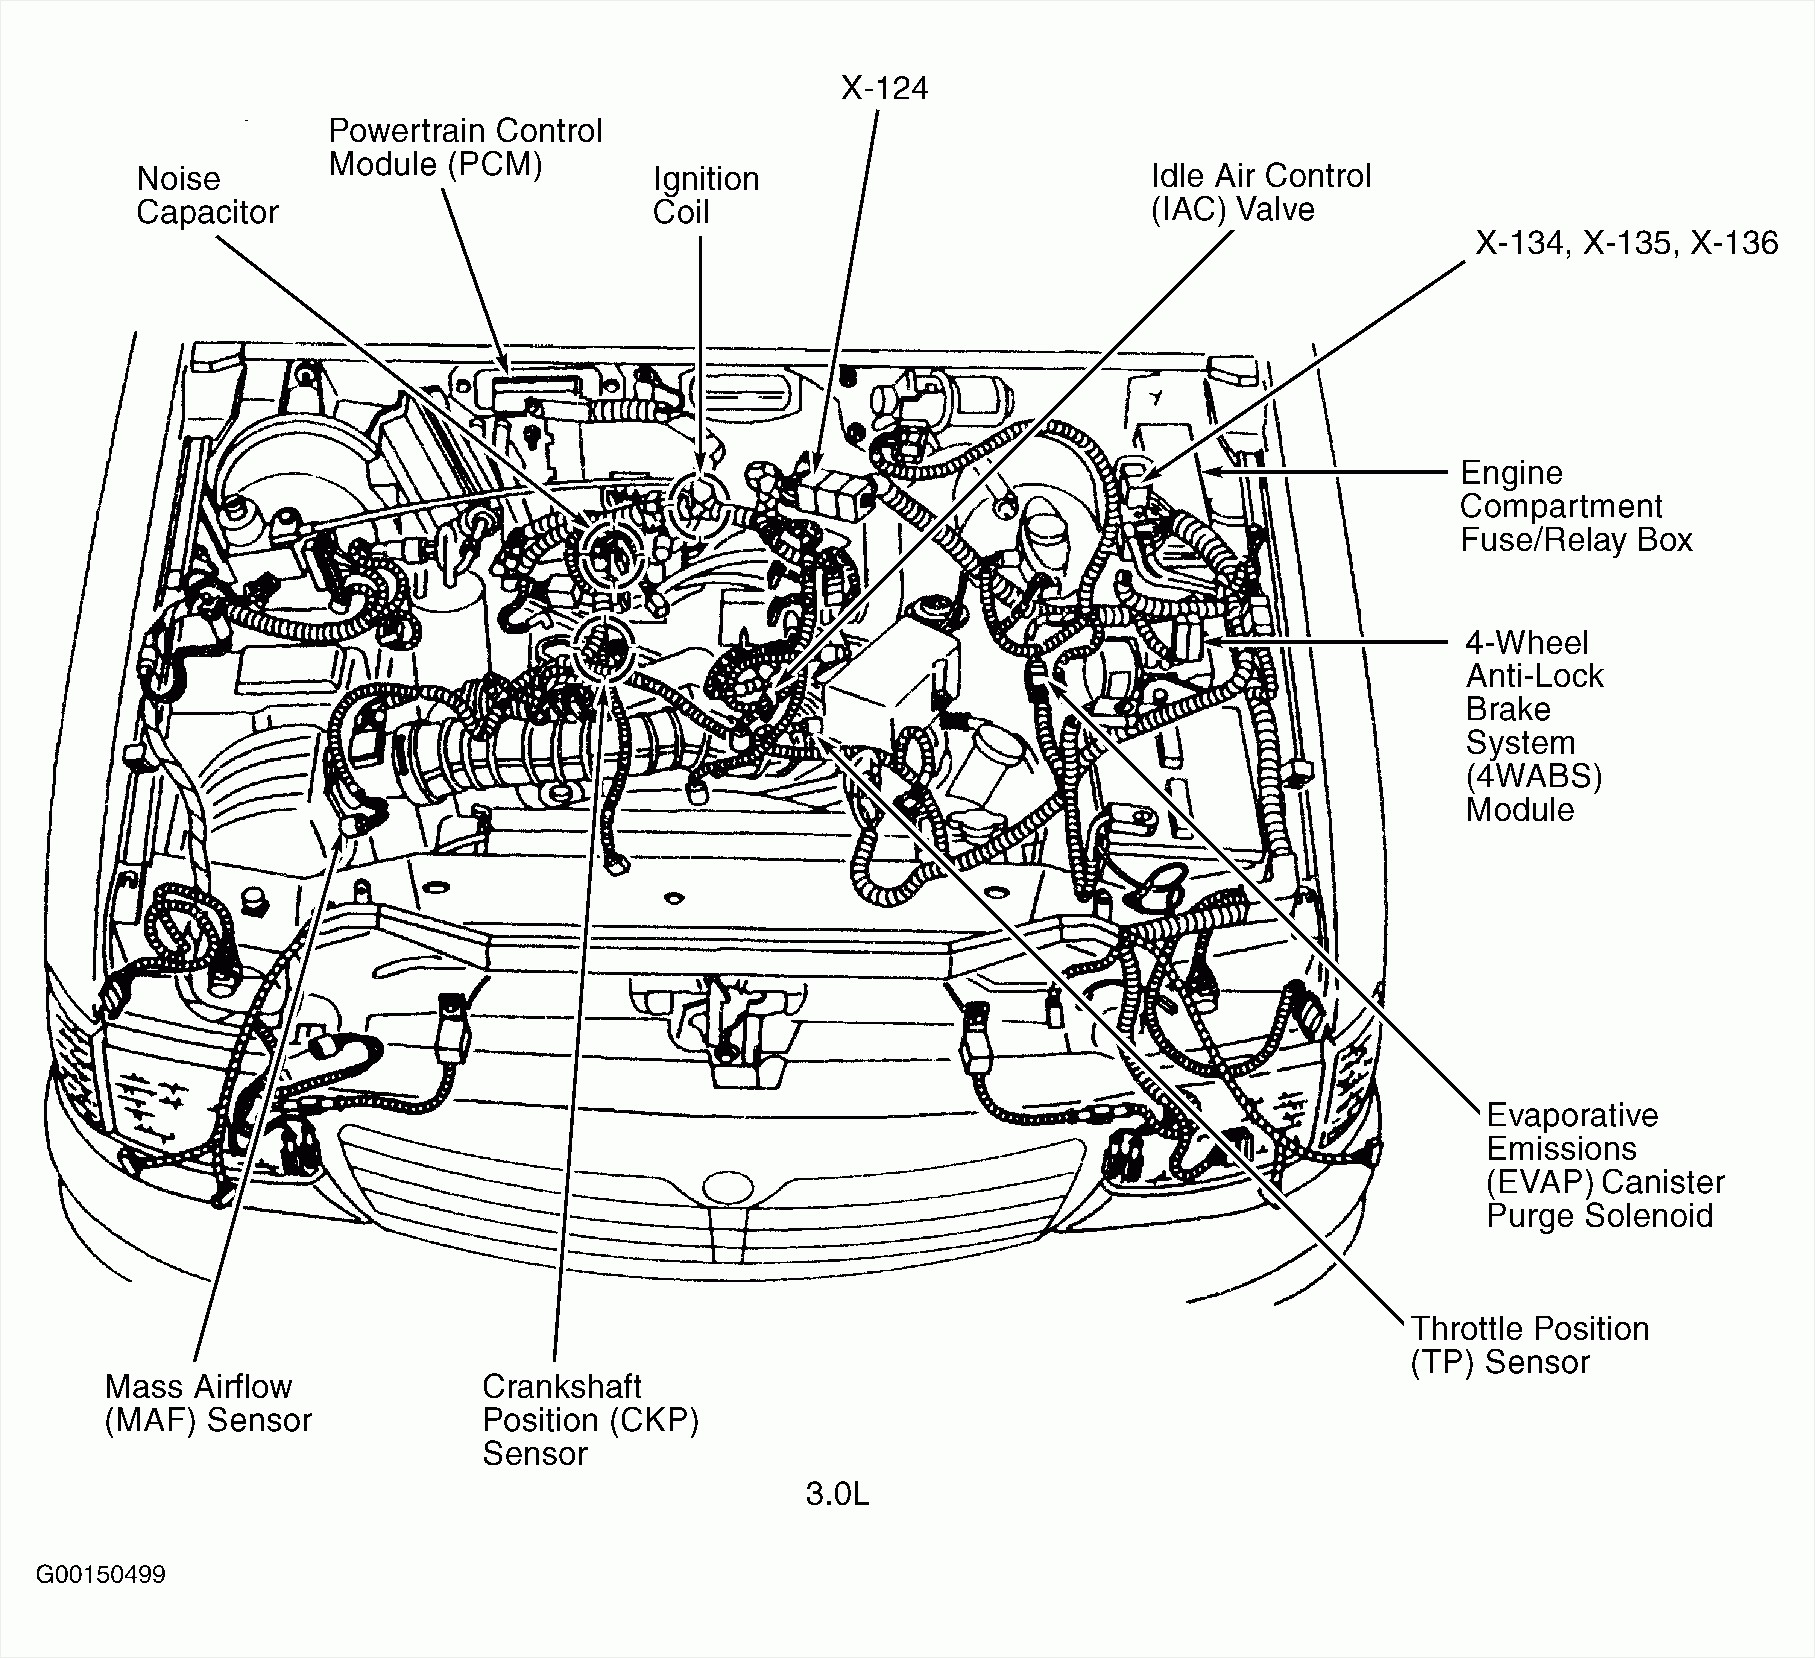 Toyota 3 0 V6 Engine Wiring Diagram on motor schematics